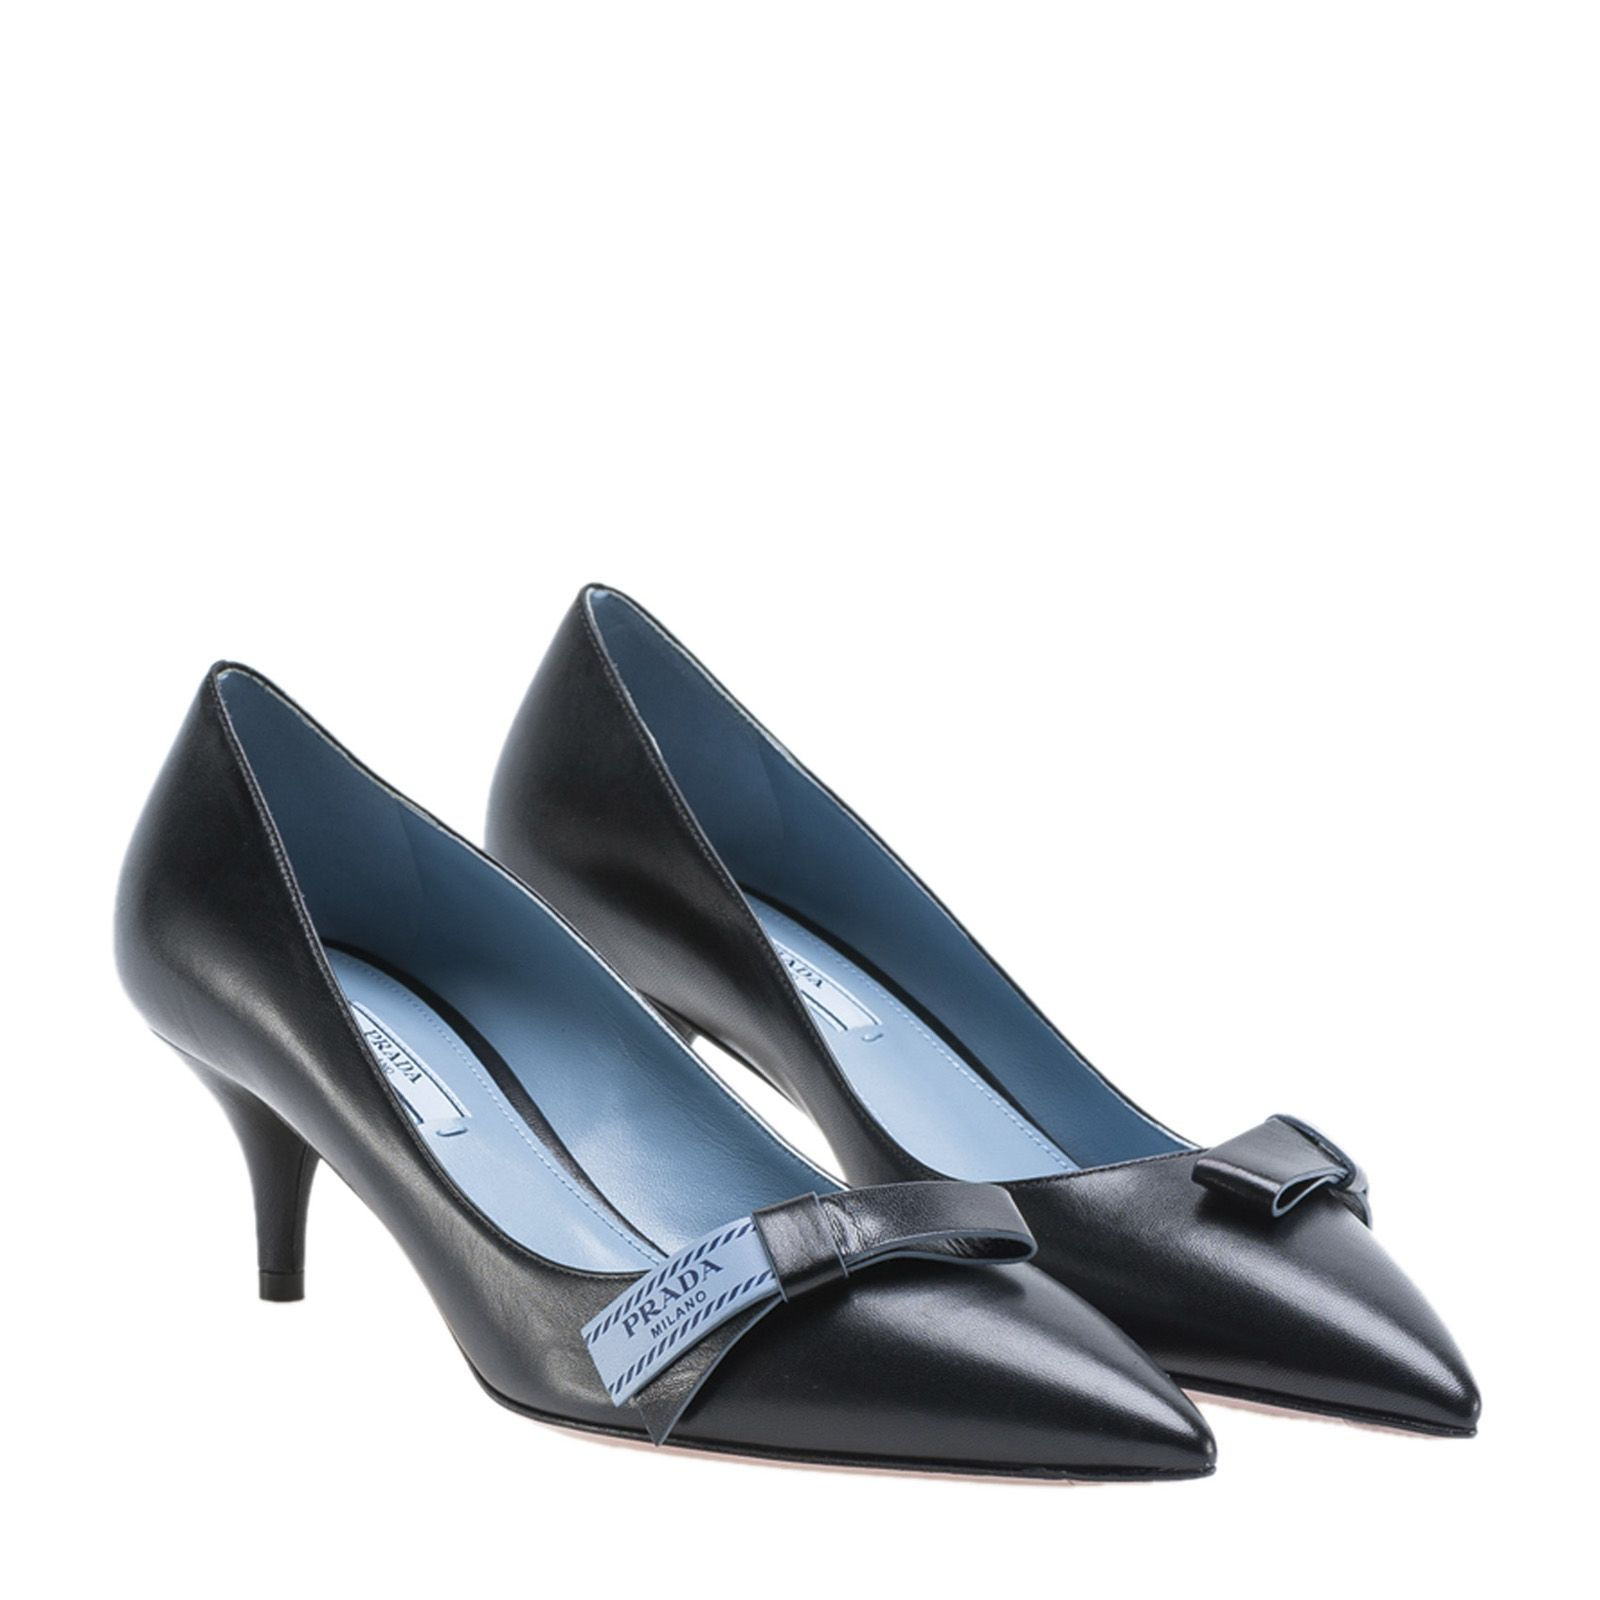 bow-embellished pumps - Black Prada IaHhtbjV